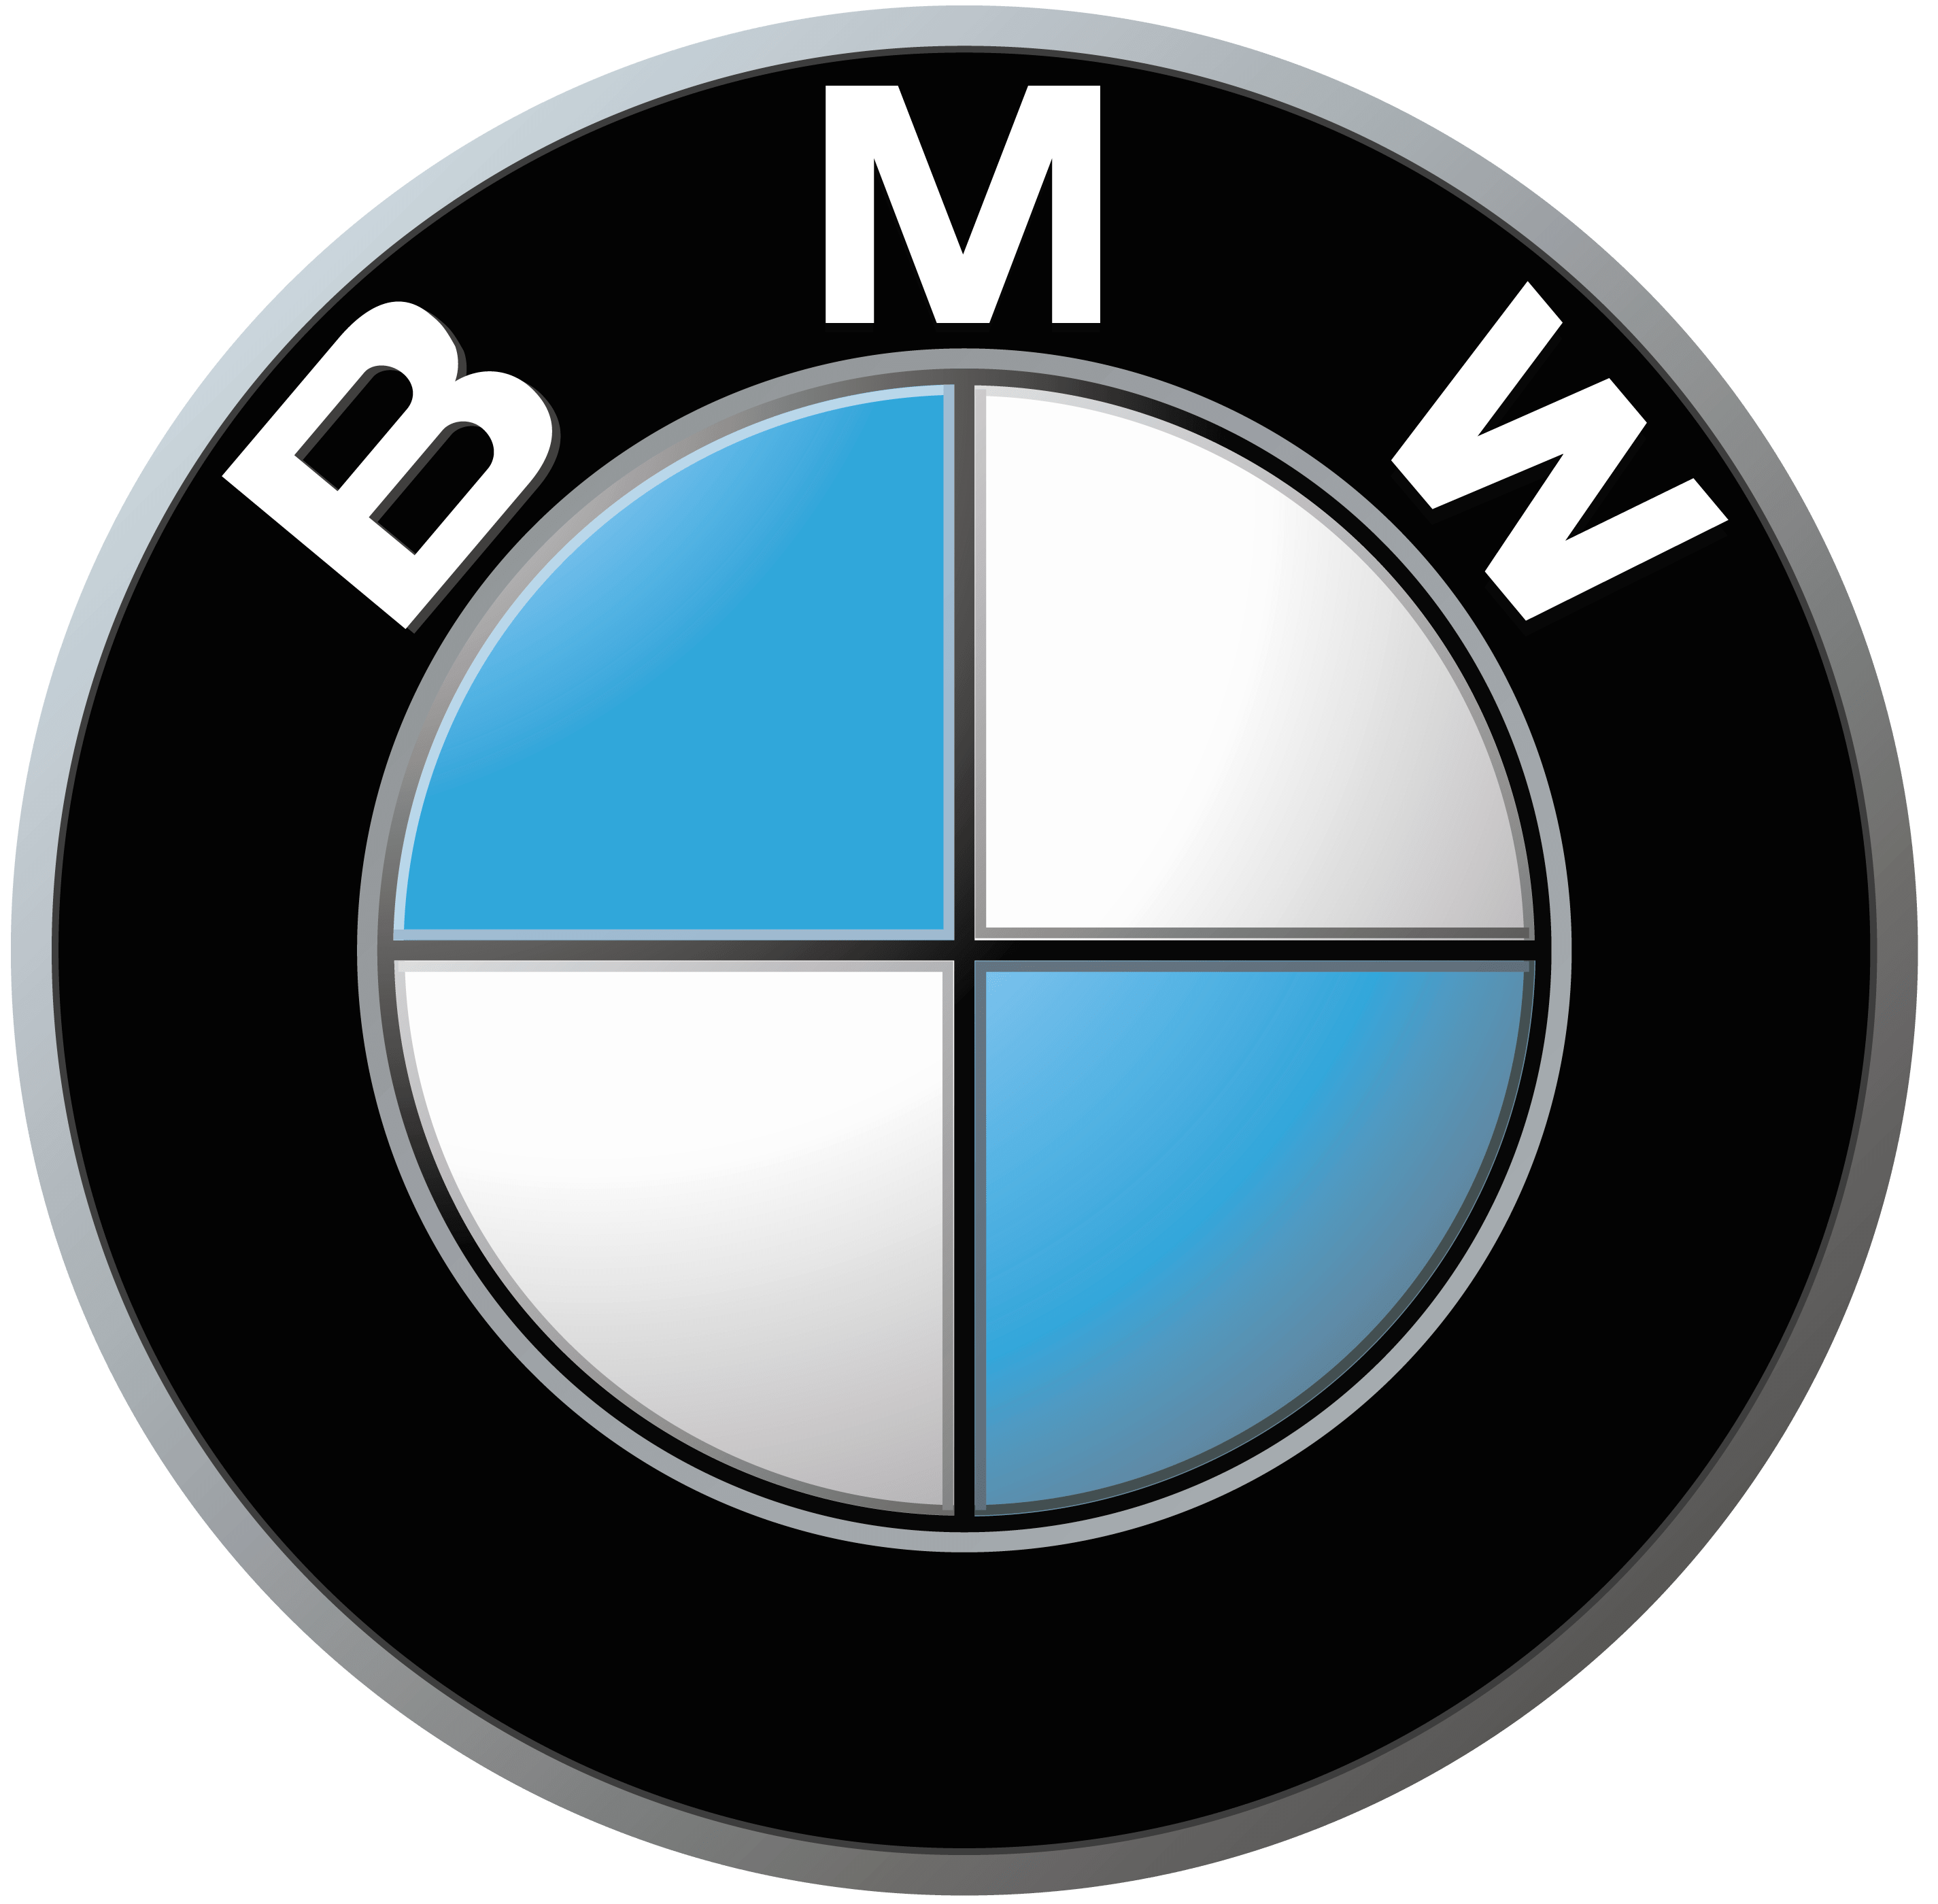 BMW logo images | World Cars Brands